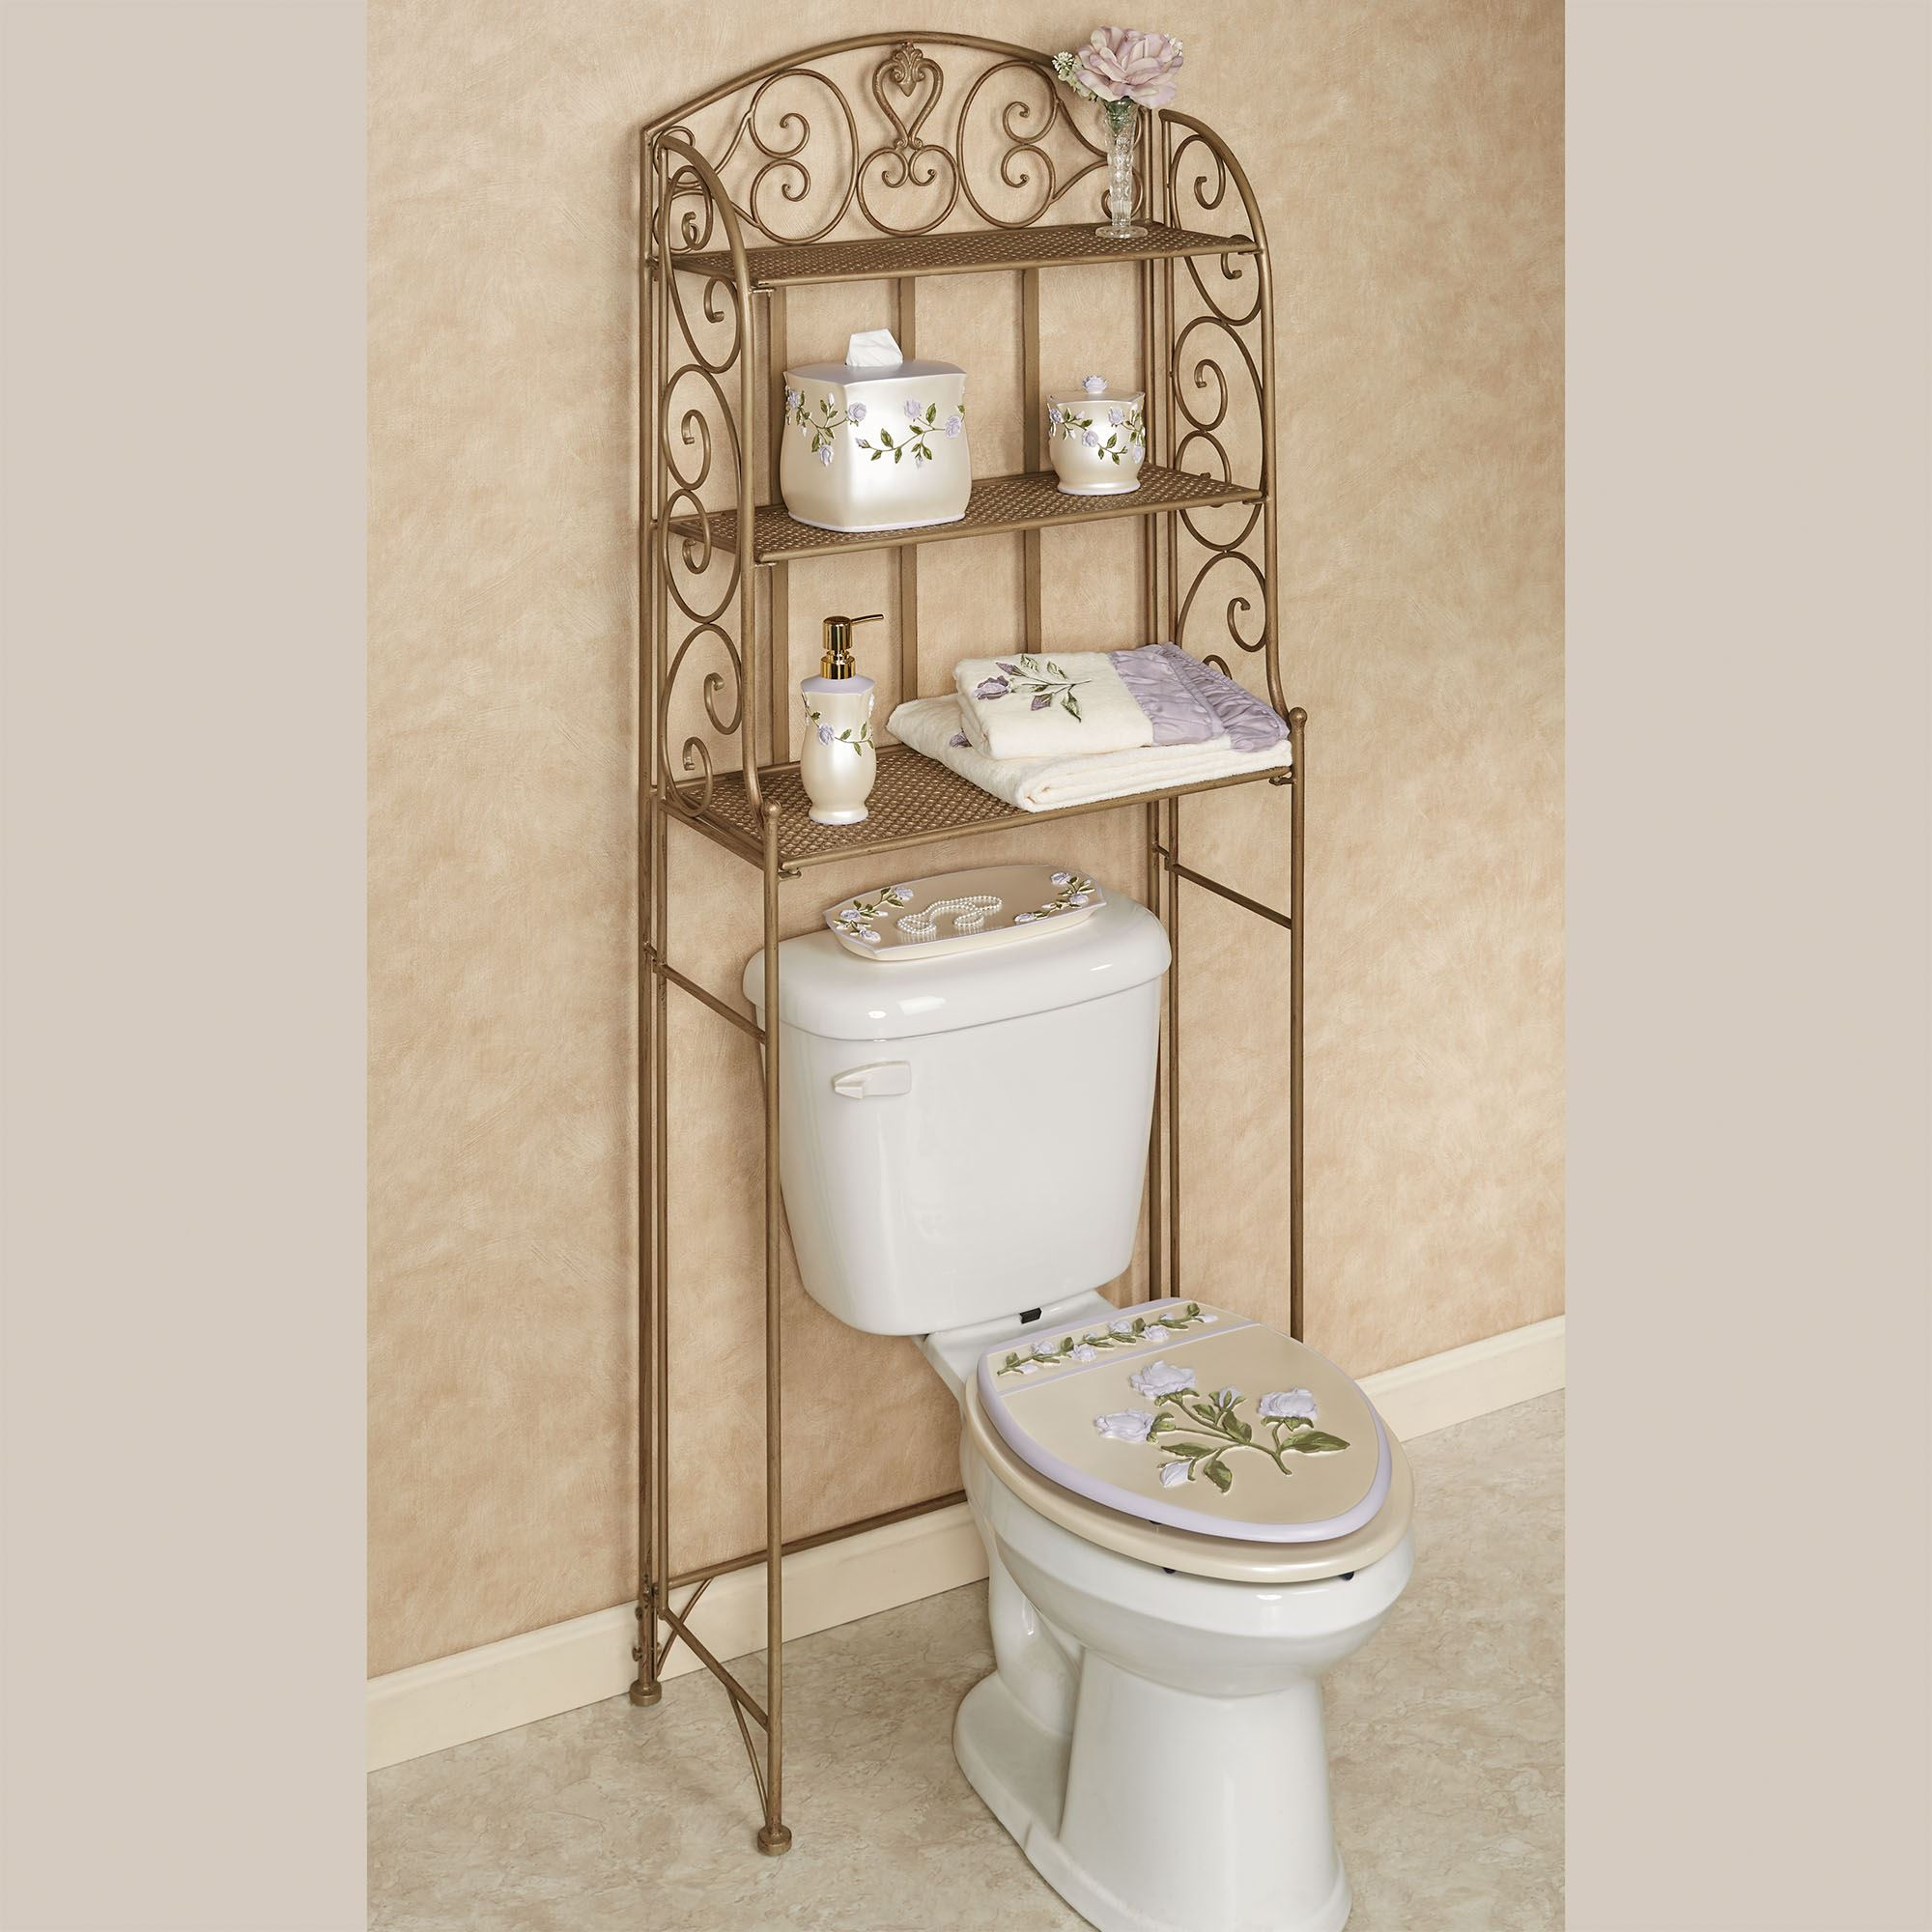 Aldabella Satin Gold Bathroom Space Saver